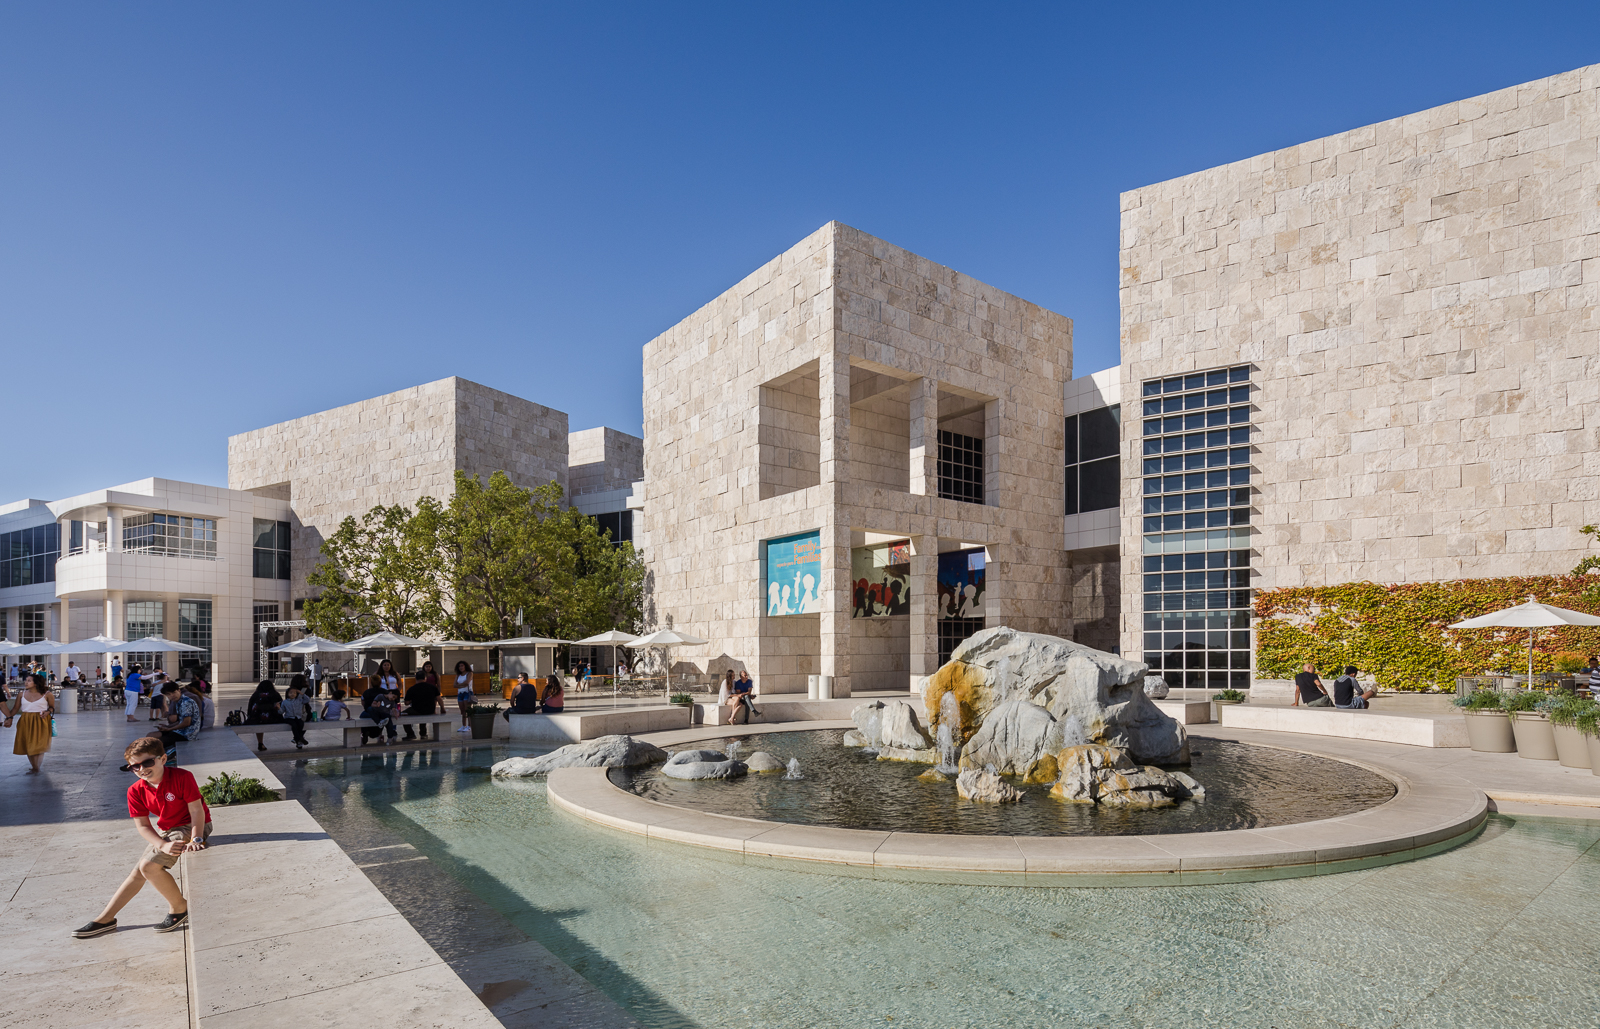 Exteriors and fountain of the Getty Center museum, in Los Angeles, California, US